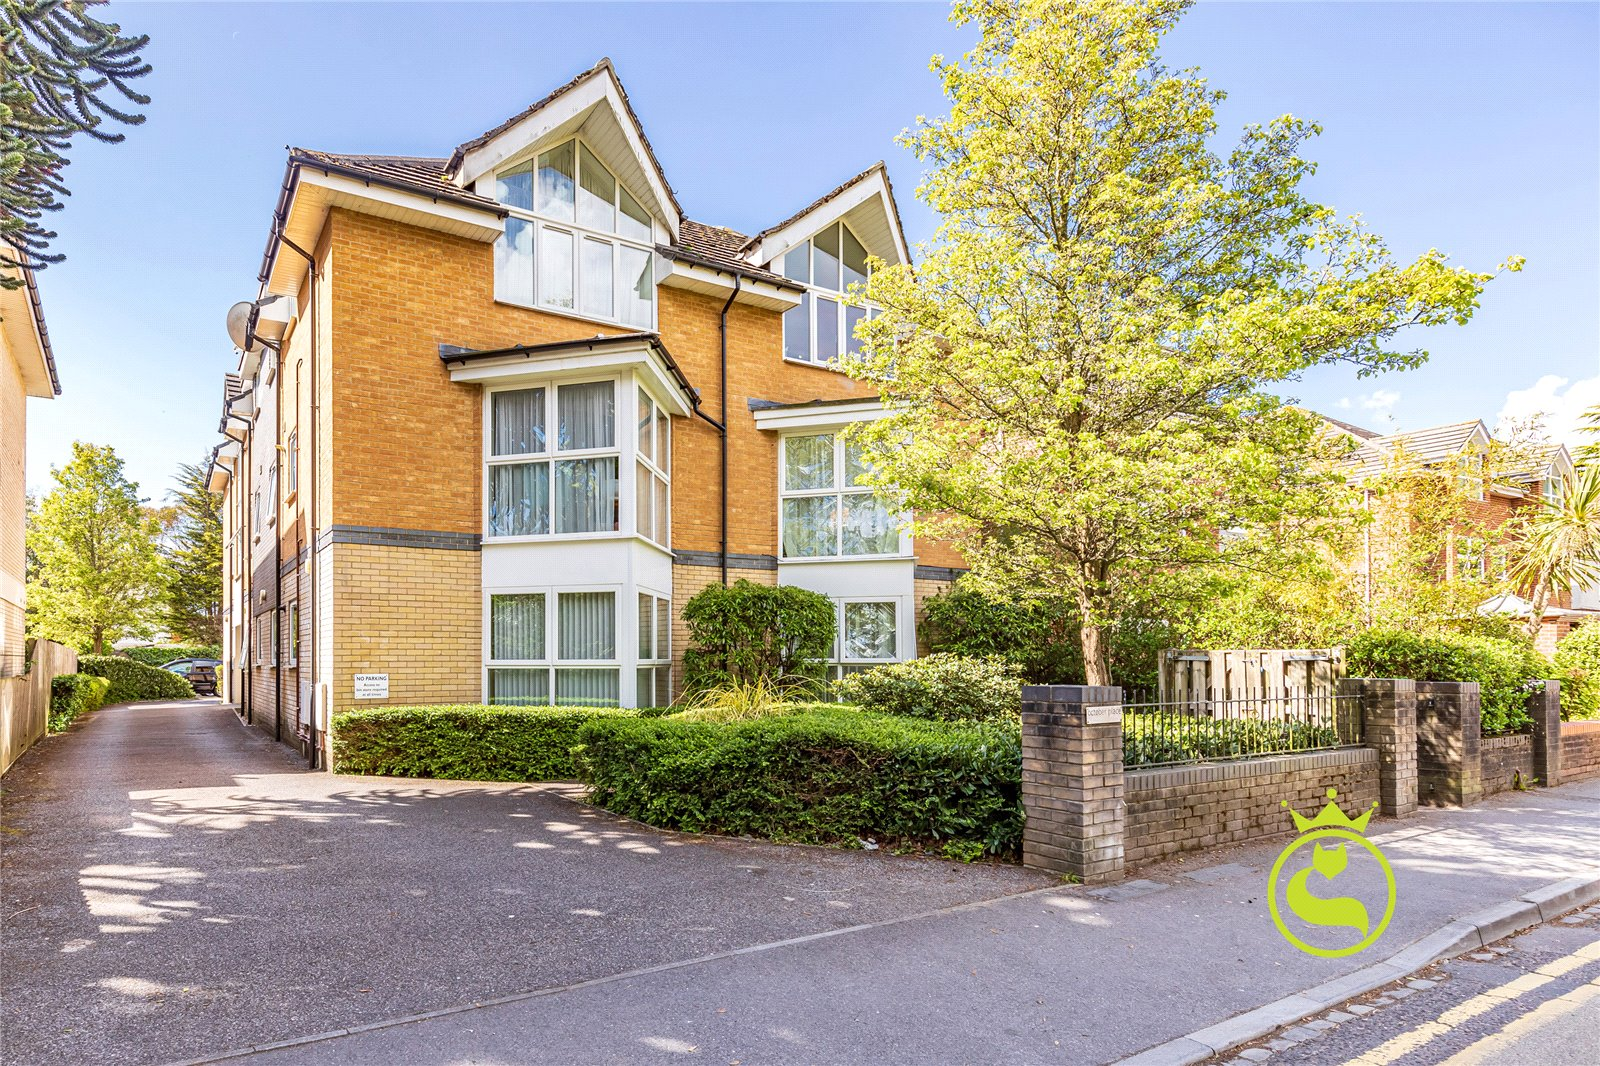 2 bed apartment for sale in Richmond Park Road, Bournemouth, BH8